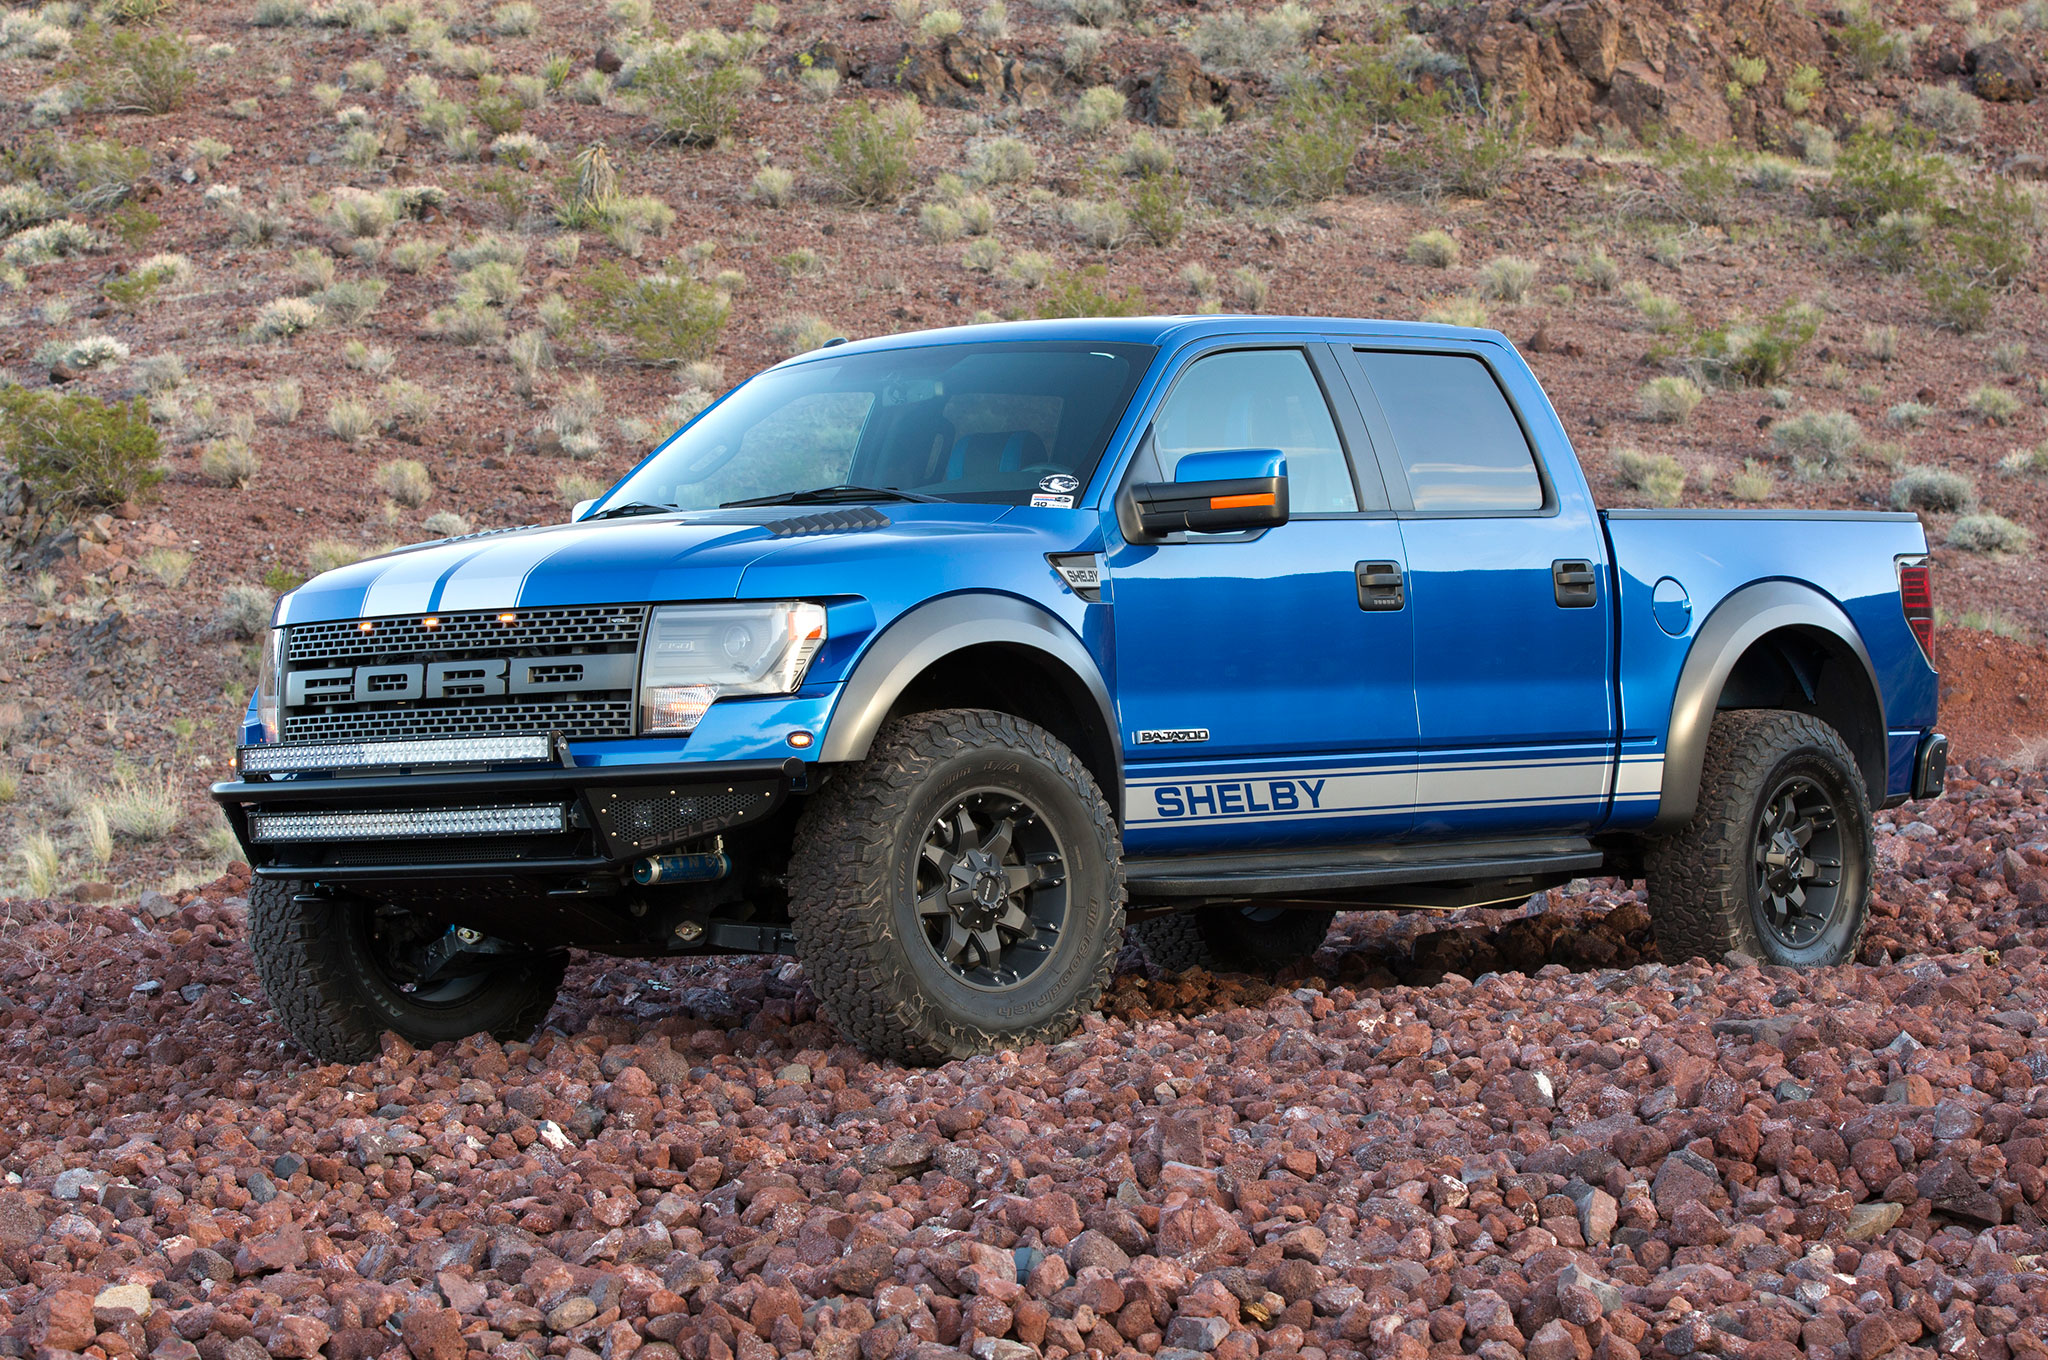 Ford shelby f150 2019 2020 new car reviews shelby american ford f 150 svt raptor baja 700 packs 700 hp motor publicscrutiny Images